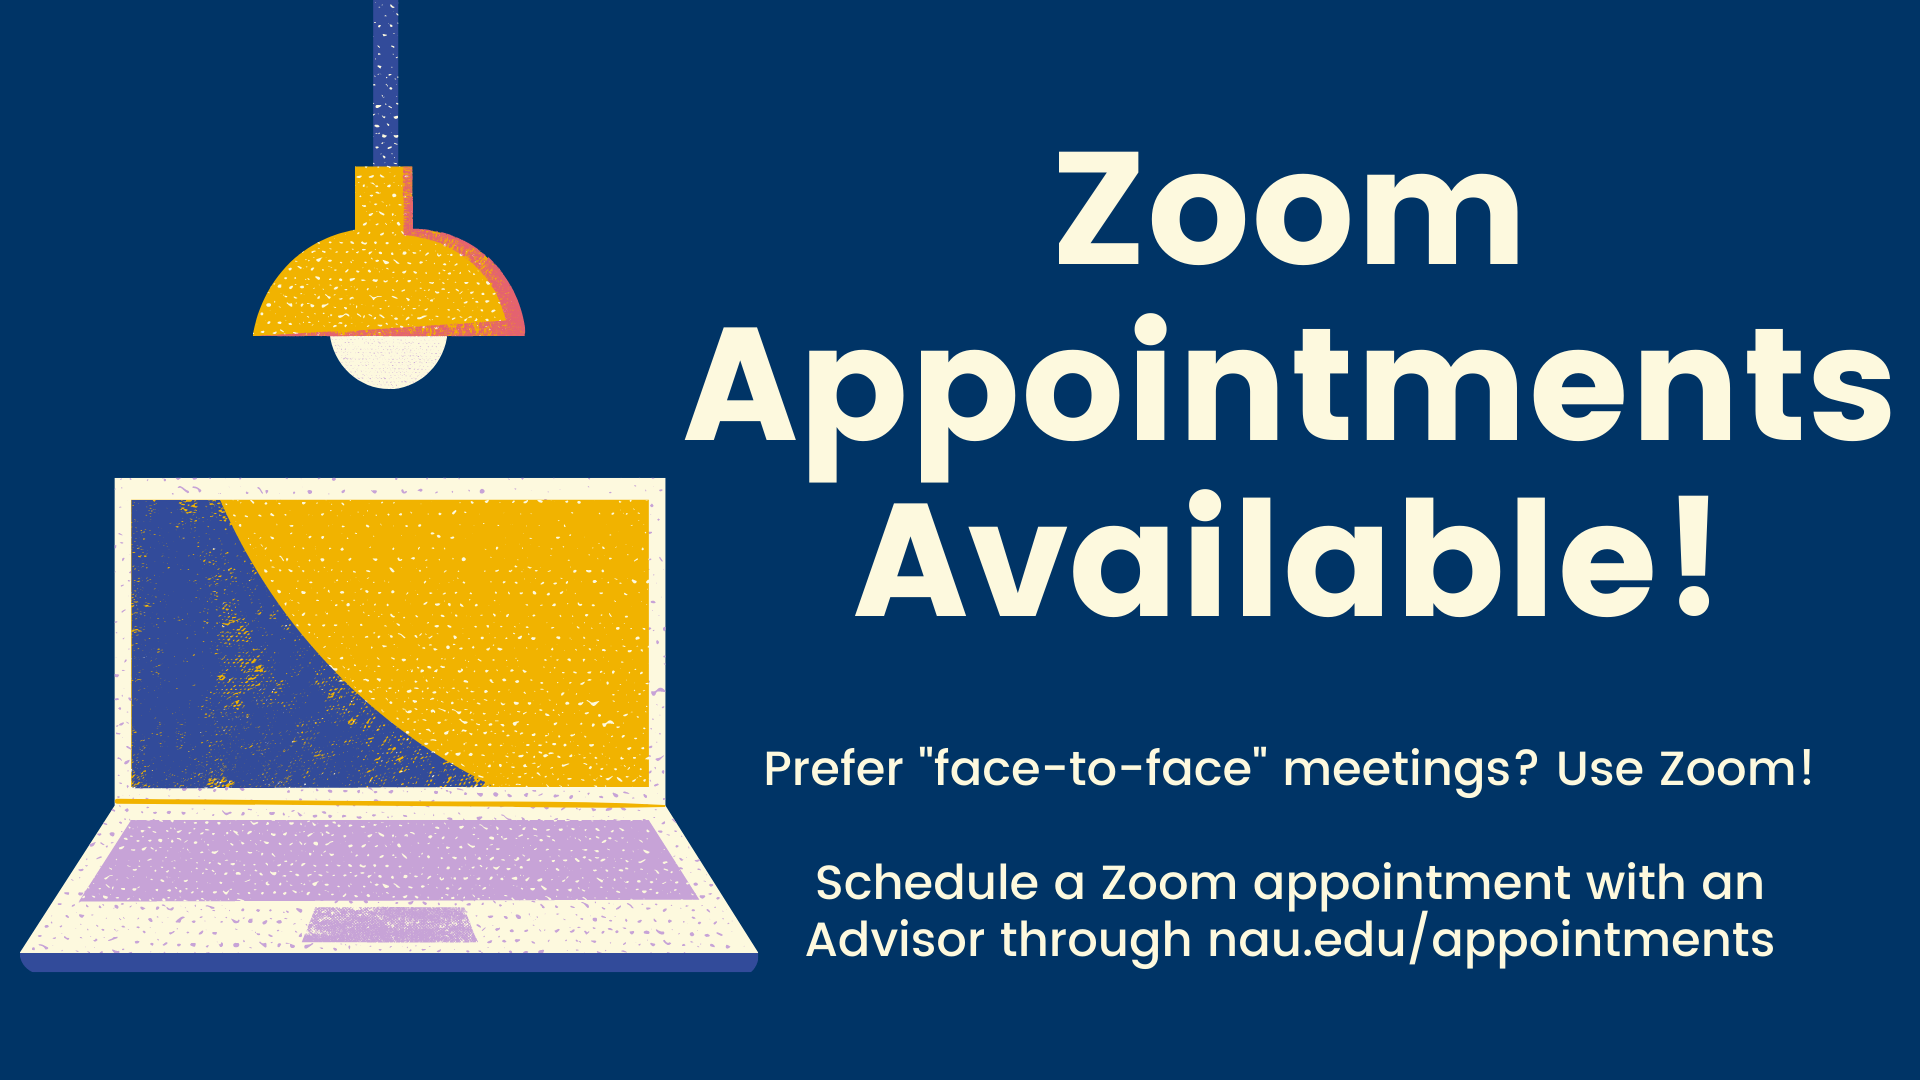 Copy of Zoom Appointments